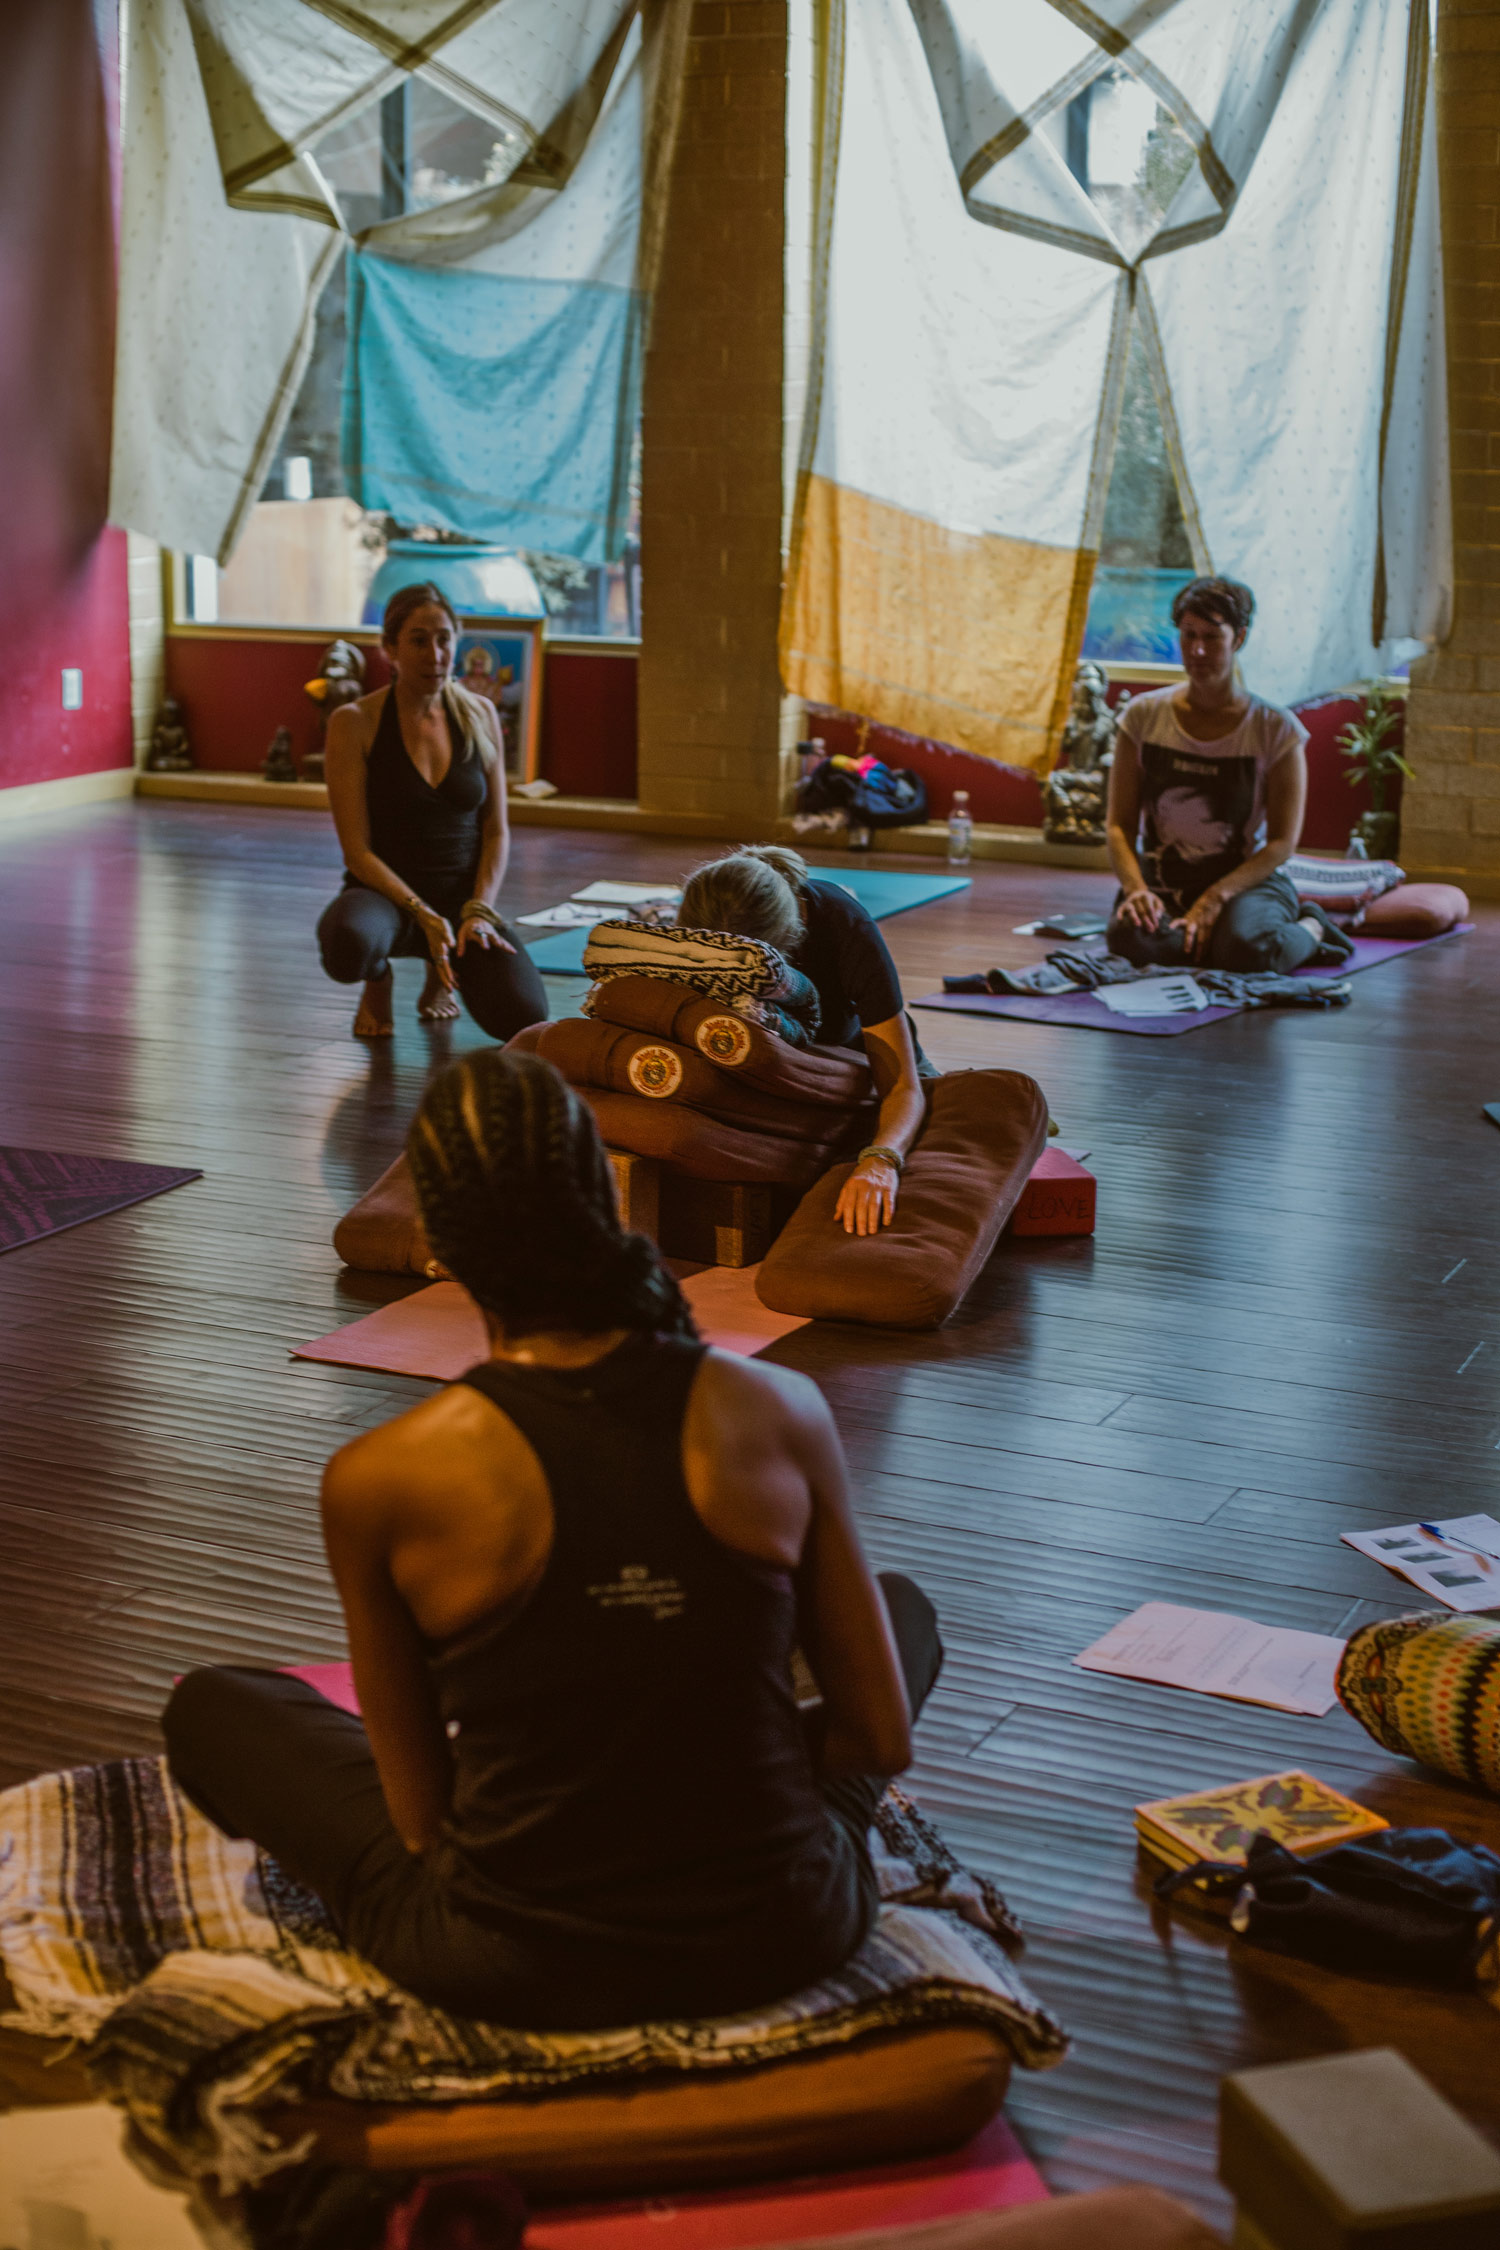 bhakti-2018-yin-yoga-teacher-training-4.jpg